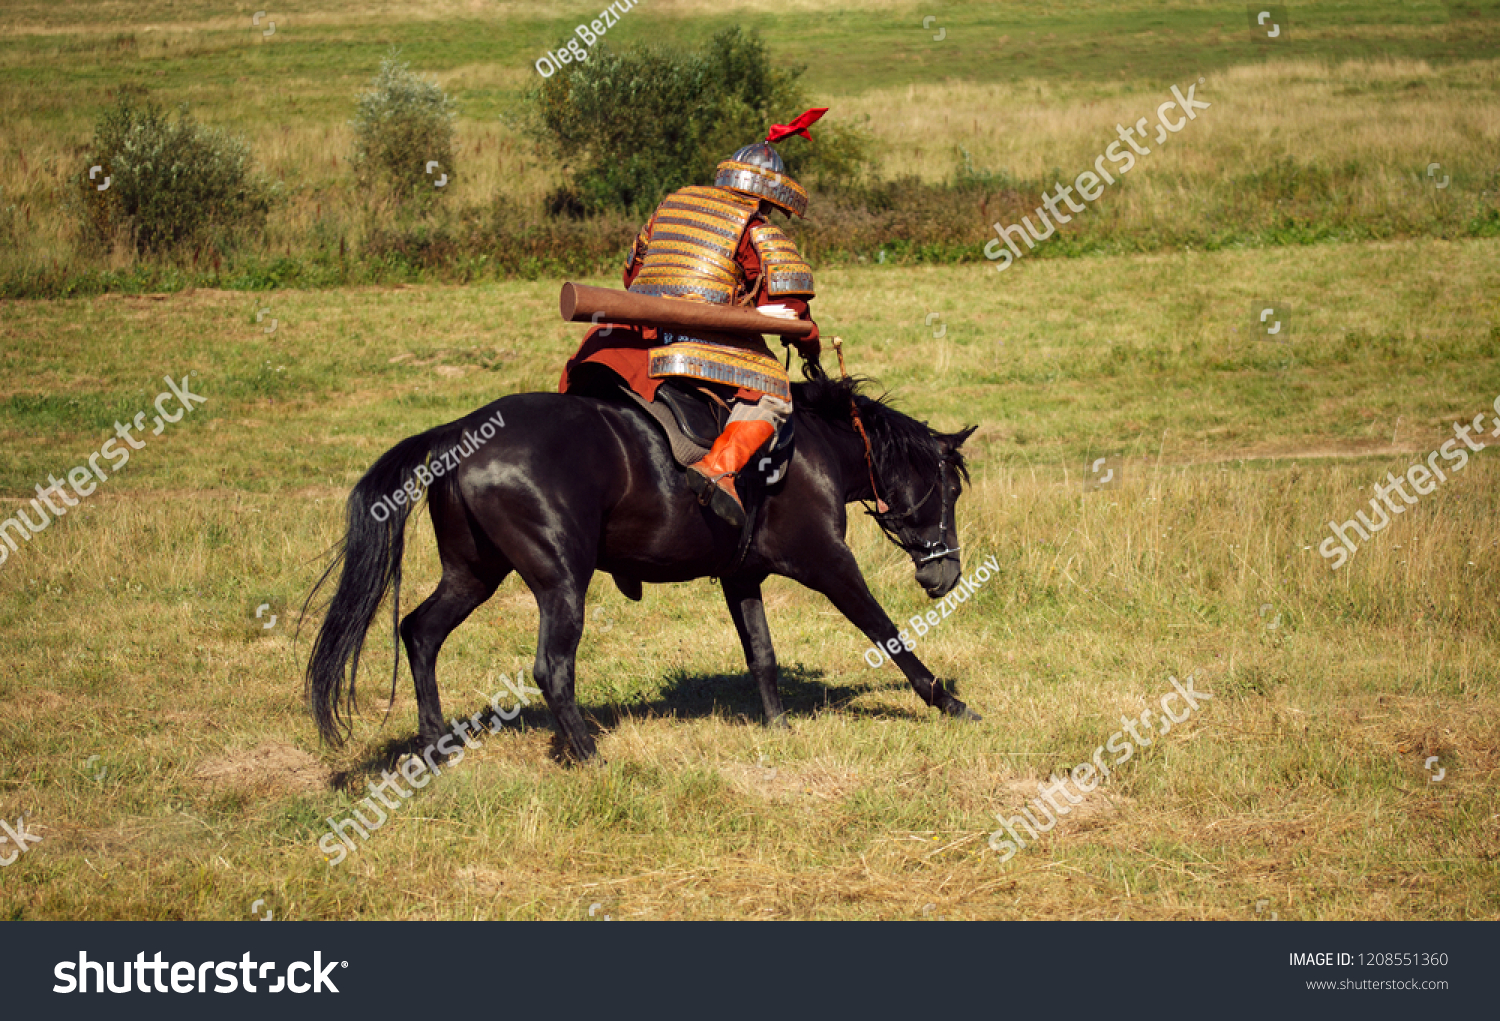 Medieval Armored Rider On Horse Equestrian Stock Photo Edit Now 1208551360